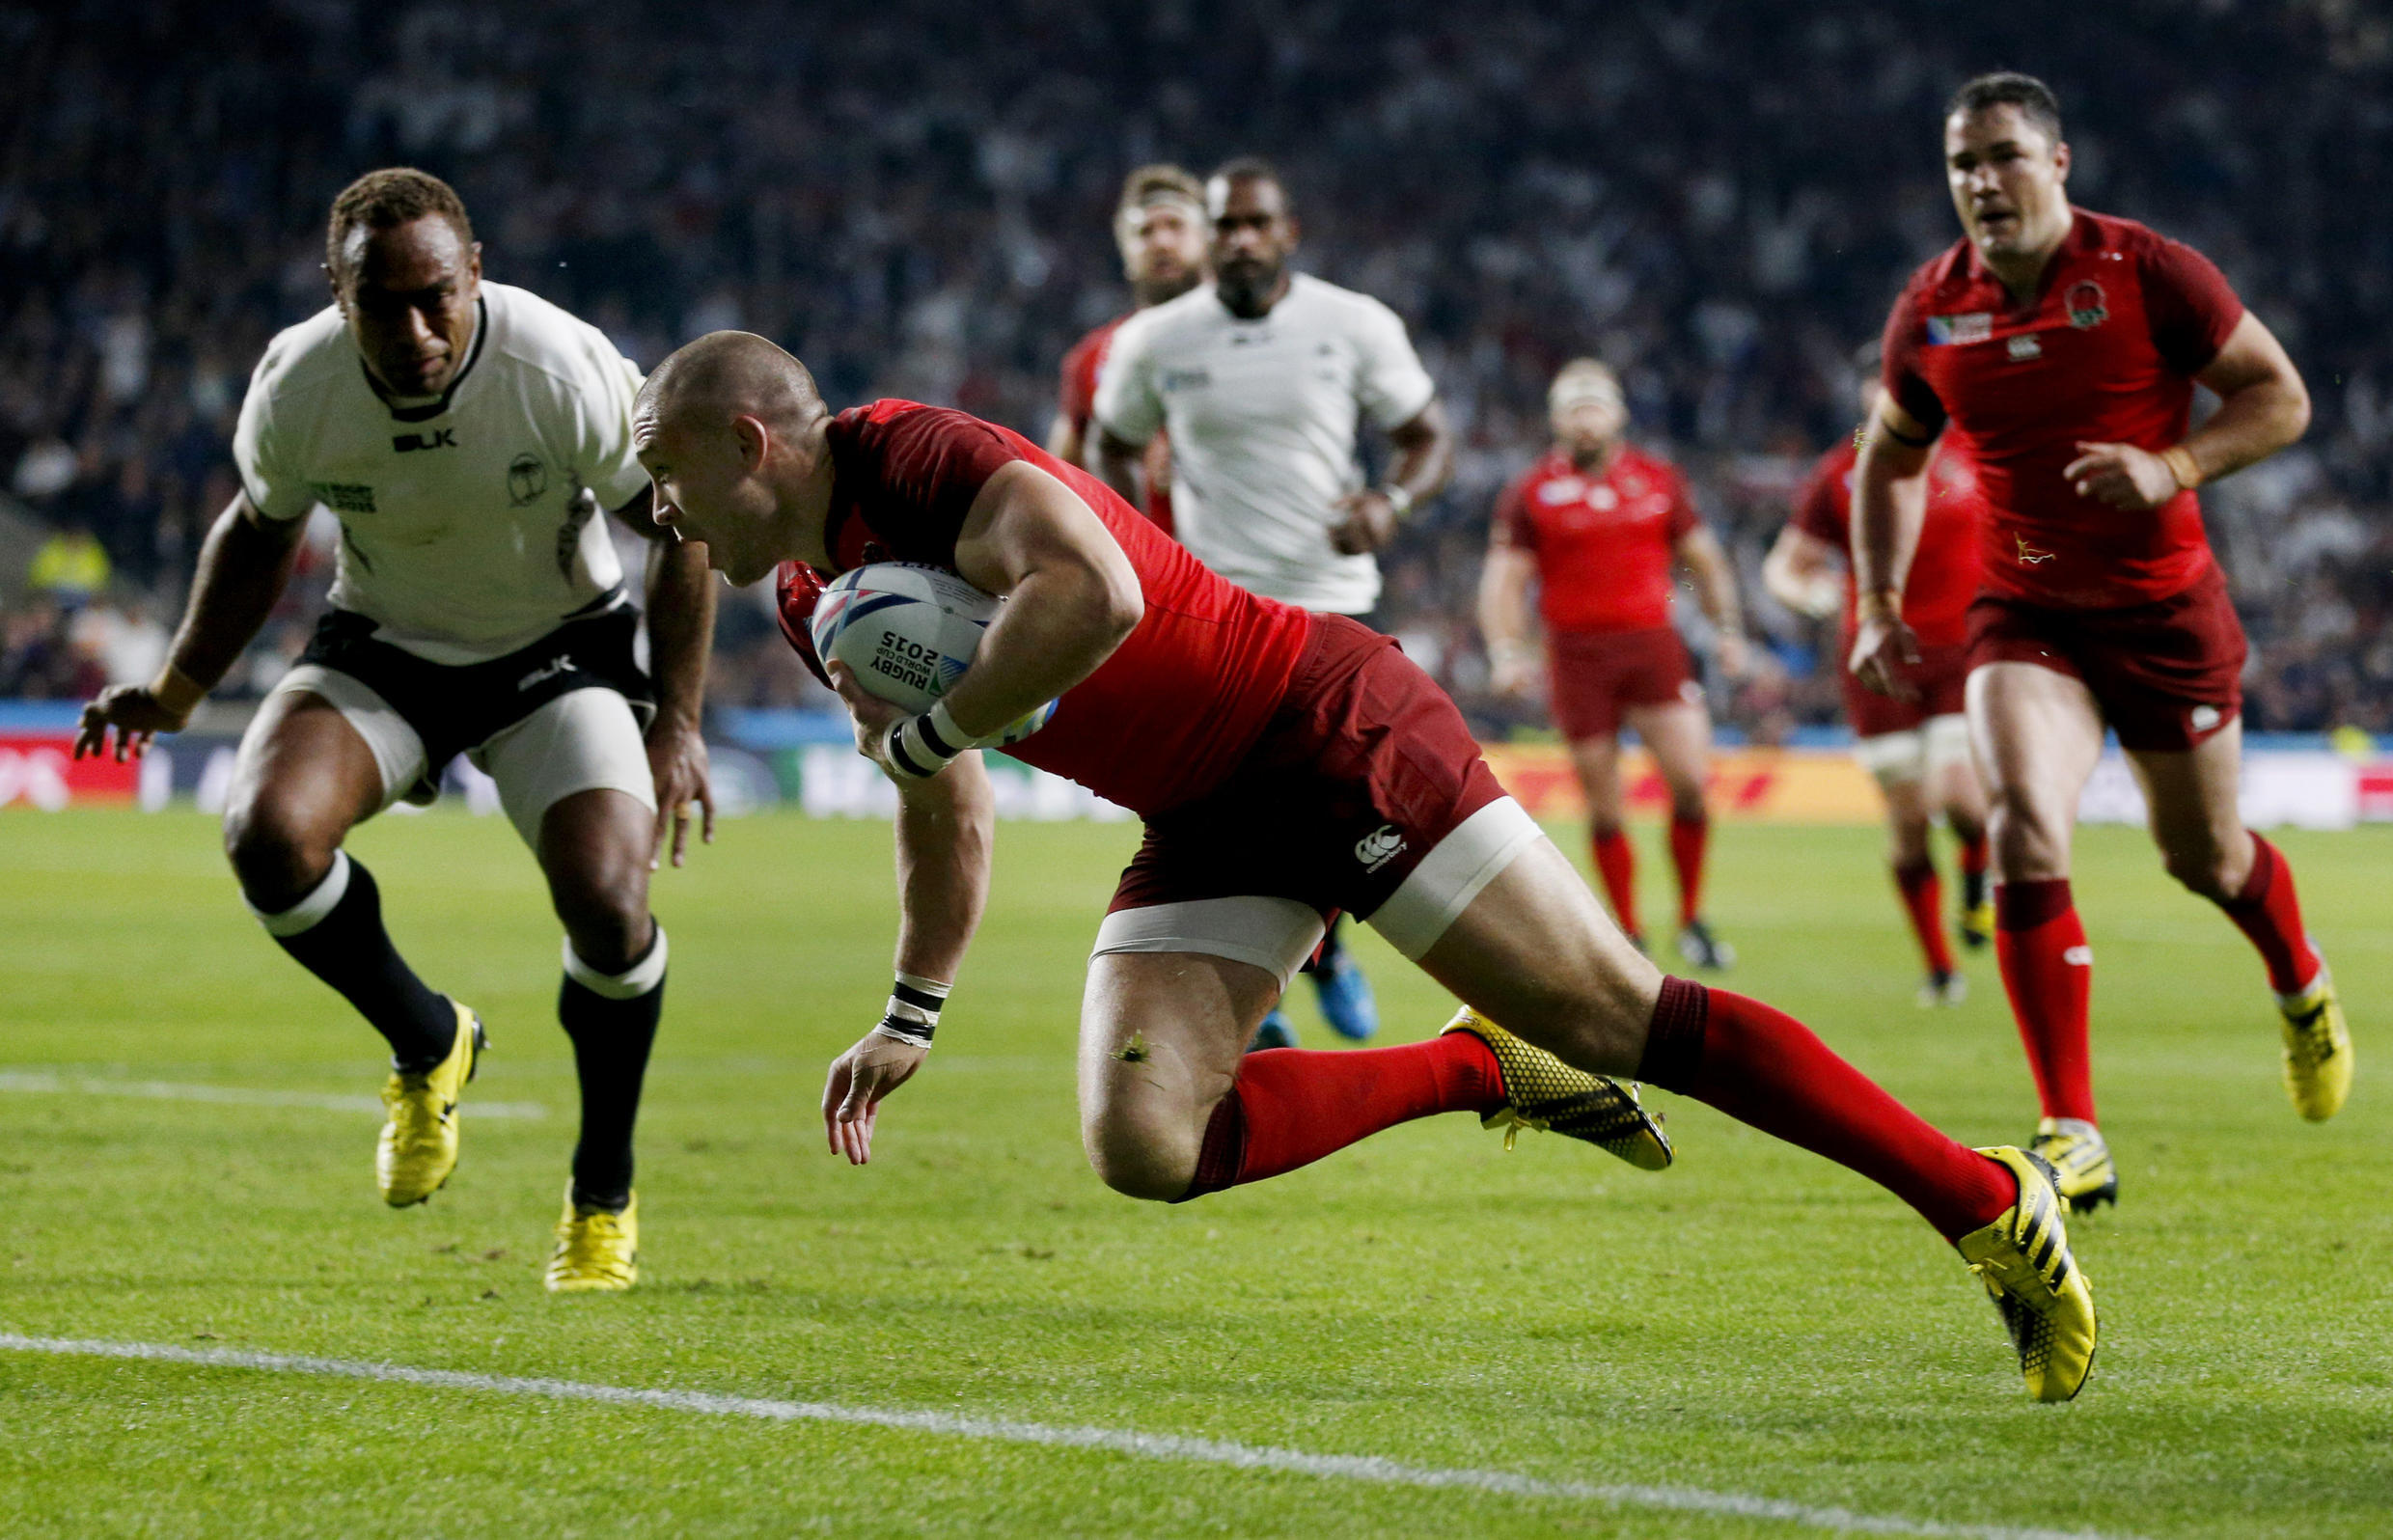 England vs Fiji in opening match of rugby World Cup